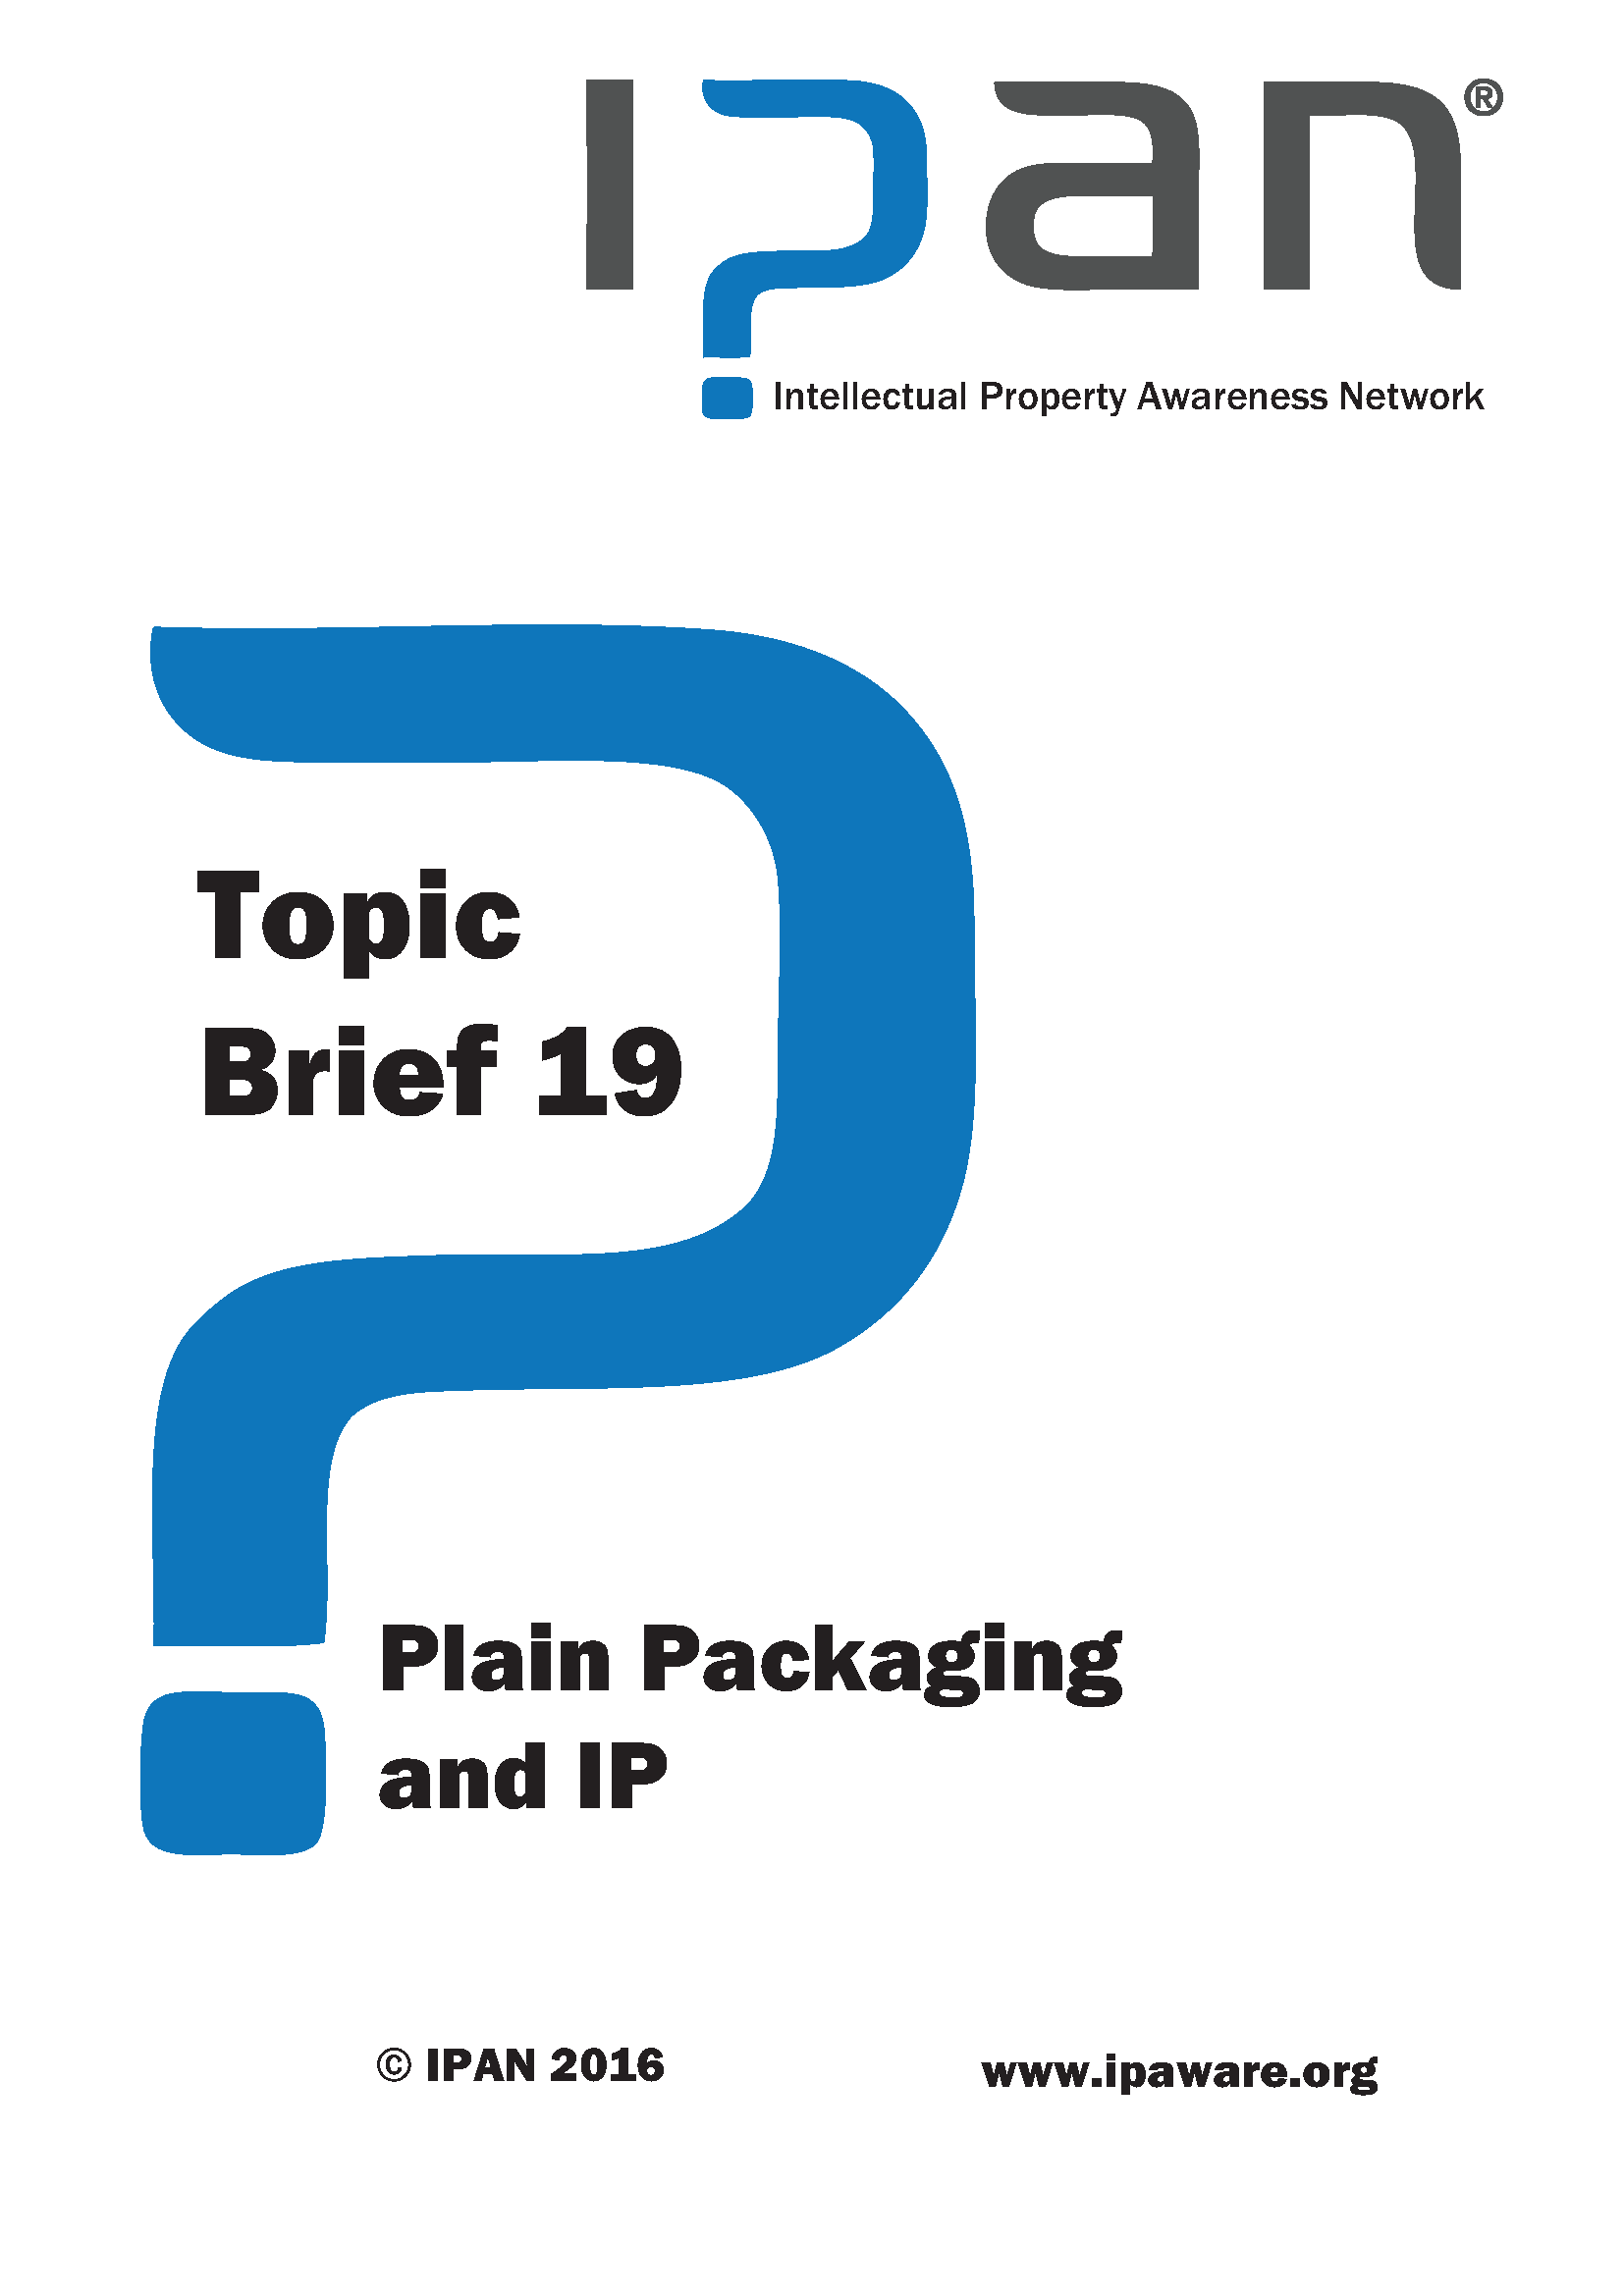 Plain packaging and IP